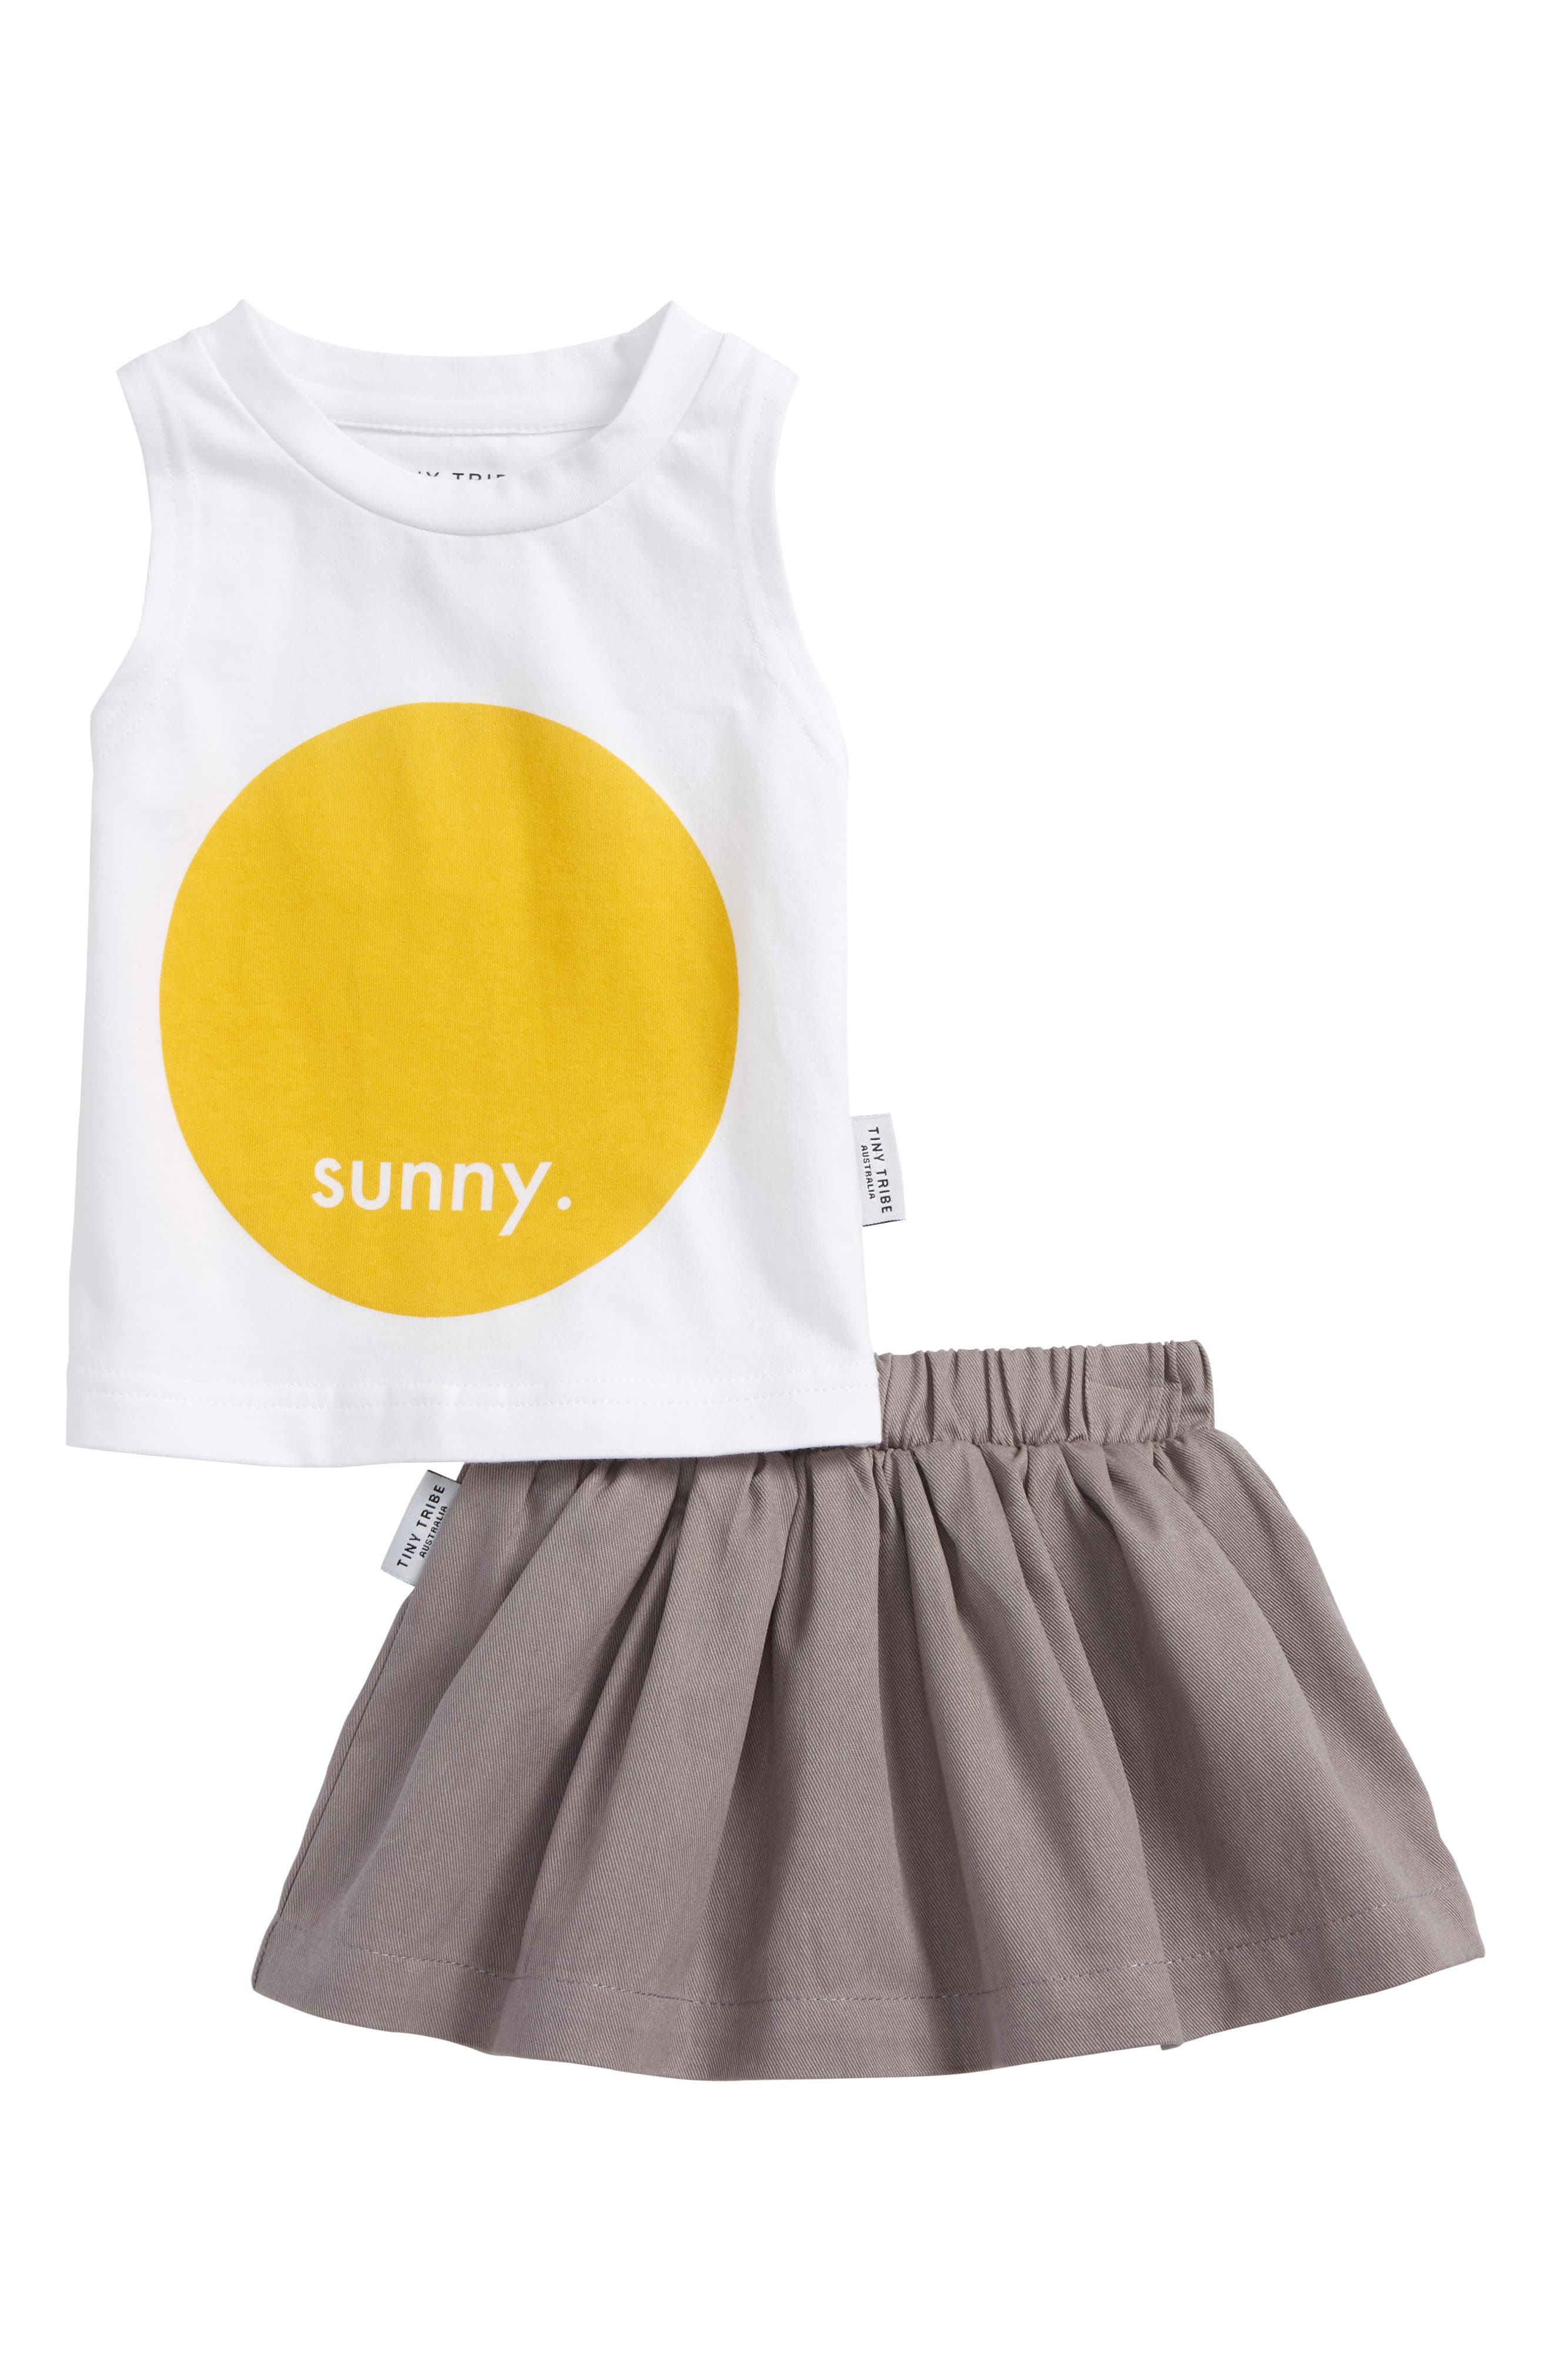 Sunny Tank & Skirt Set,                         Main,                         color, 100